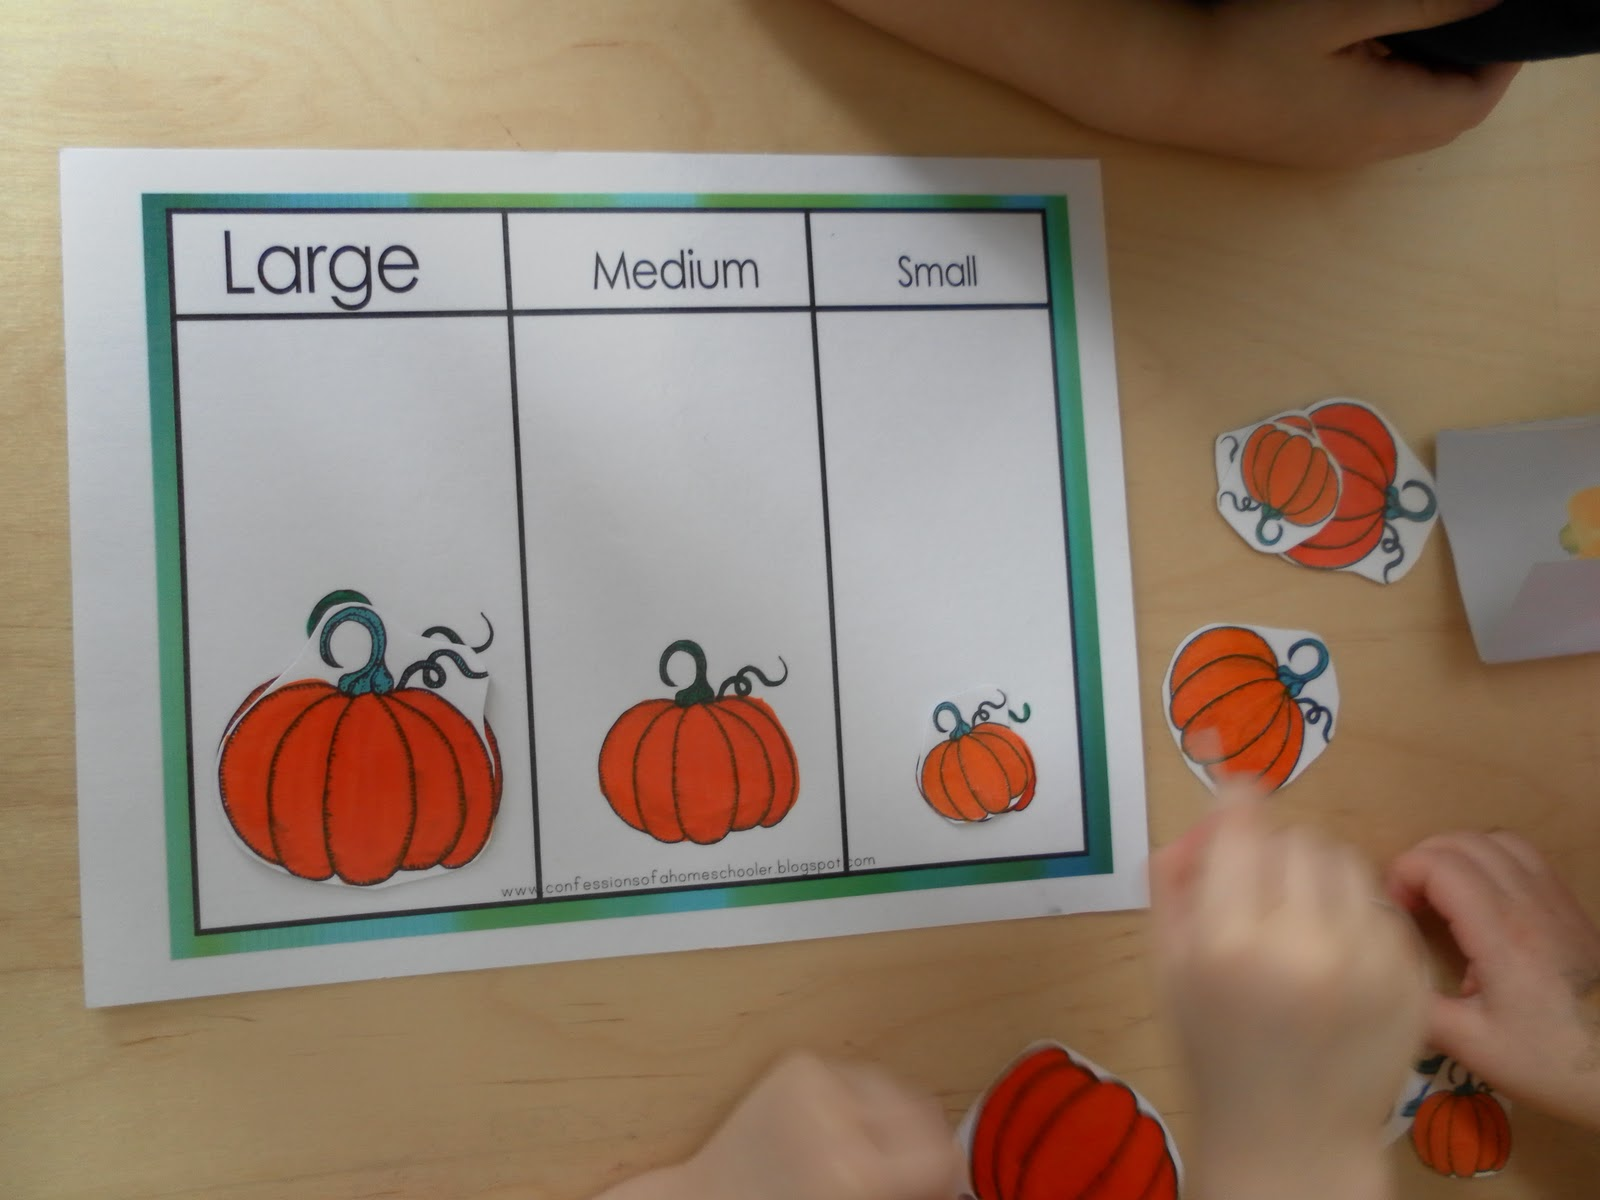 Here S A Measurement Activity Where Students Compare The